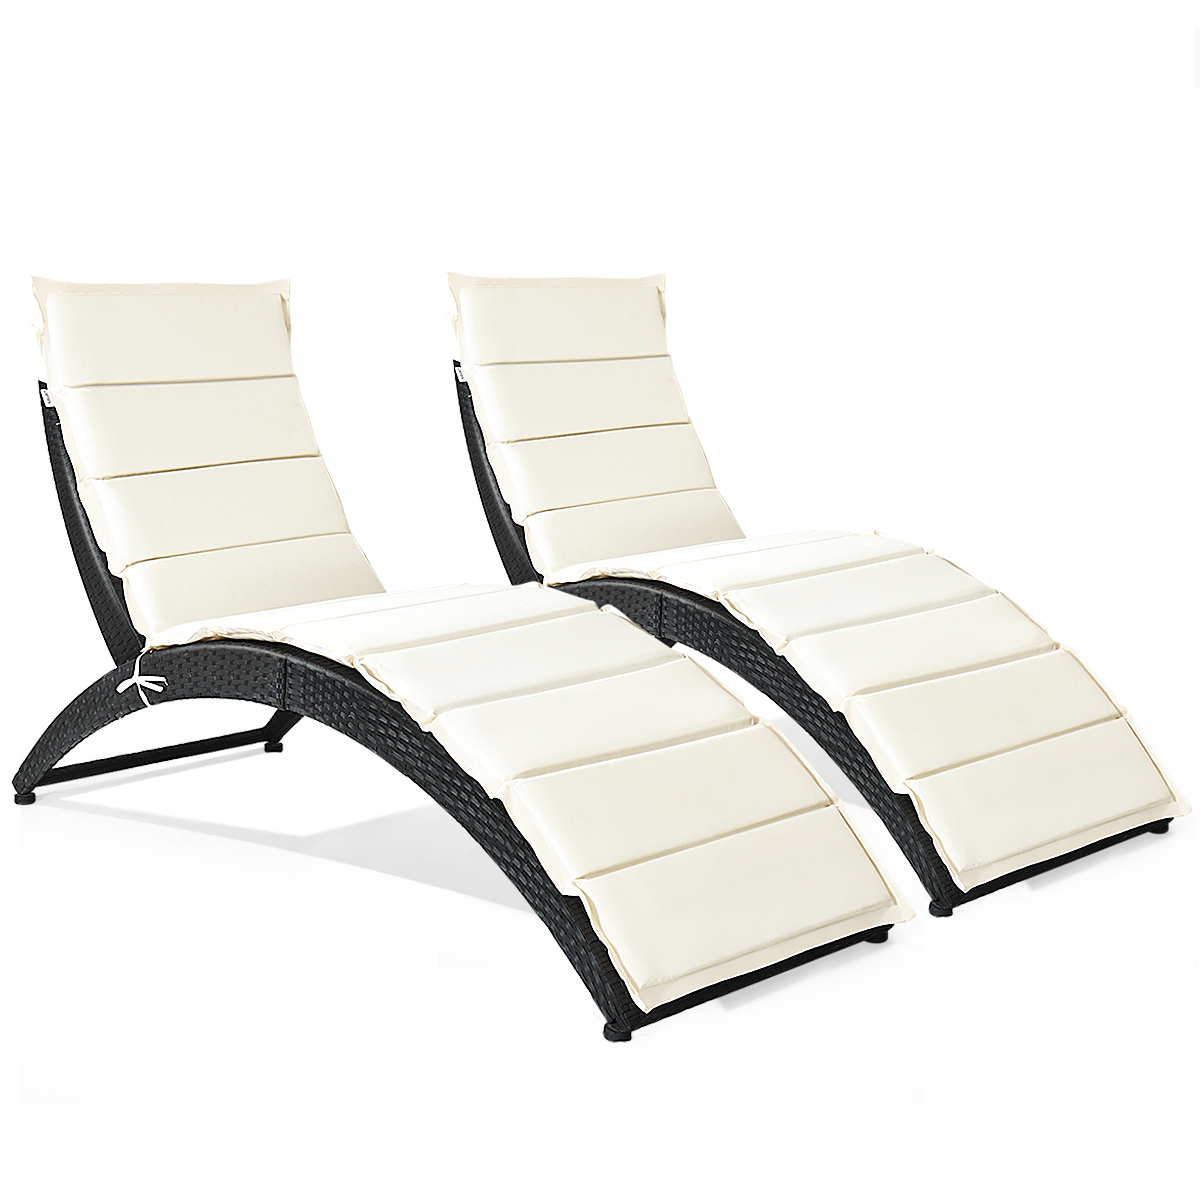 Costway 2PCS Folding Patio Rattan Lounge Chair Chaise Cushioned Portable Garden Black